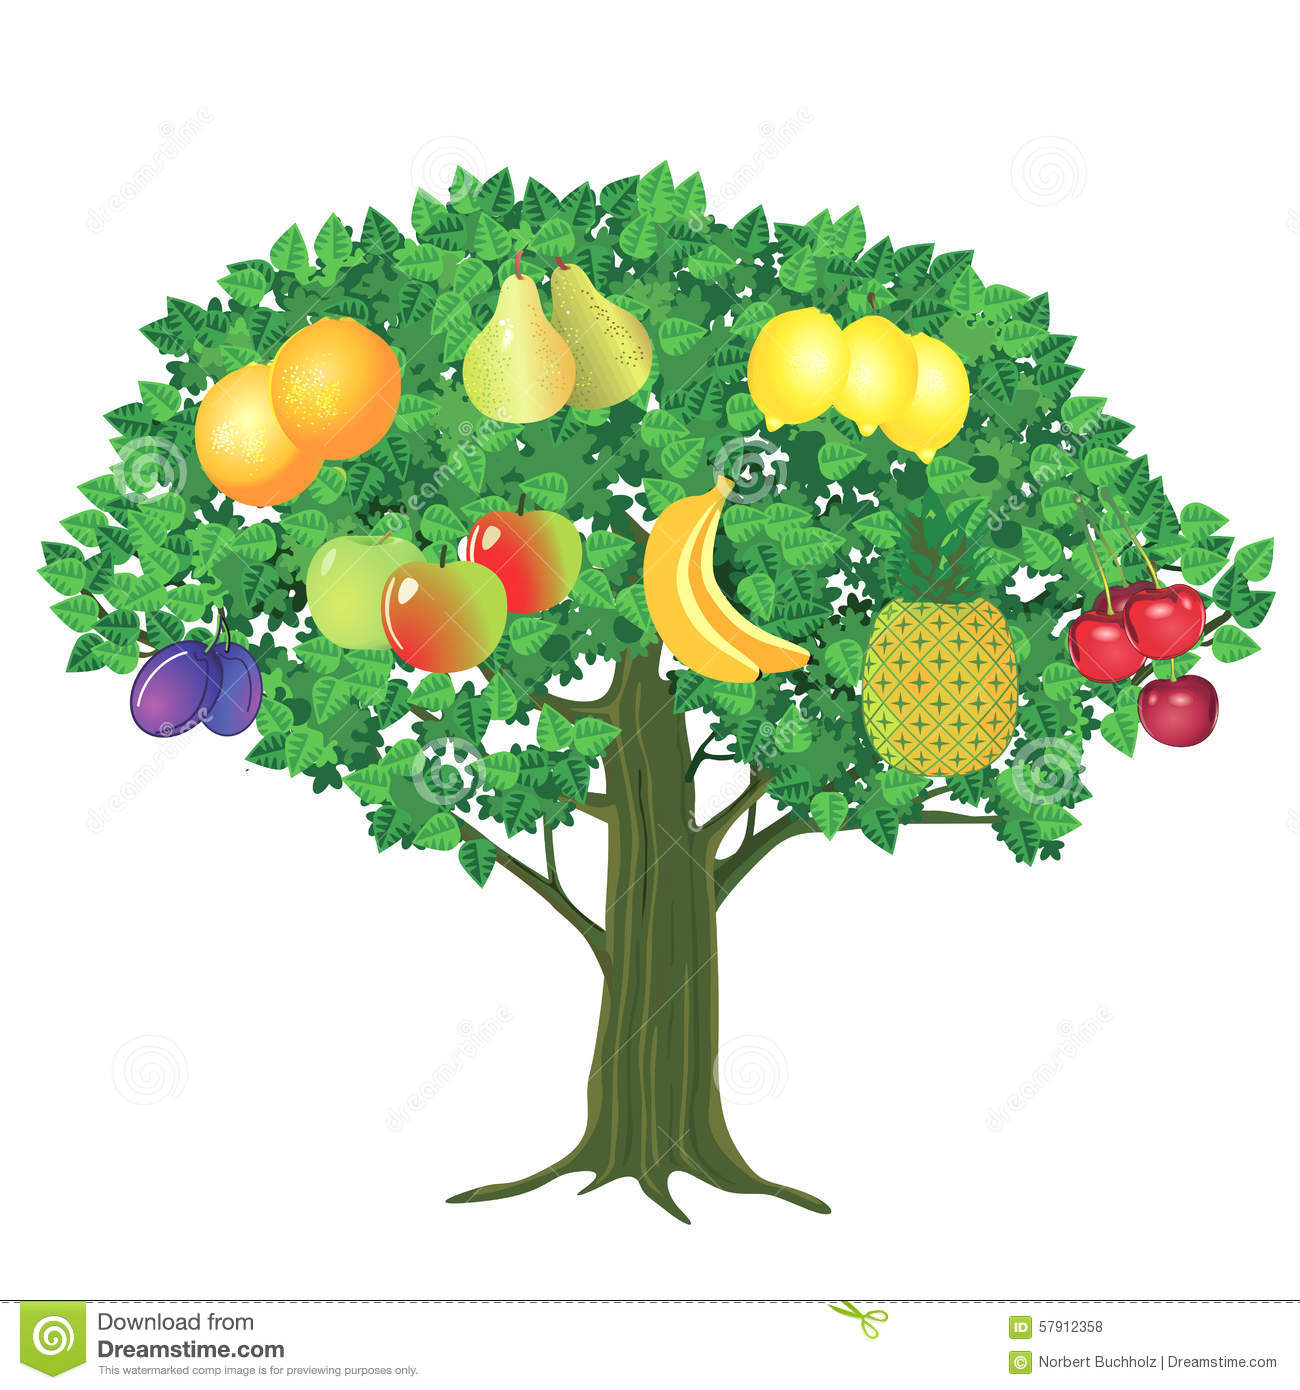 Fruit growing clipart - Clipground